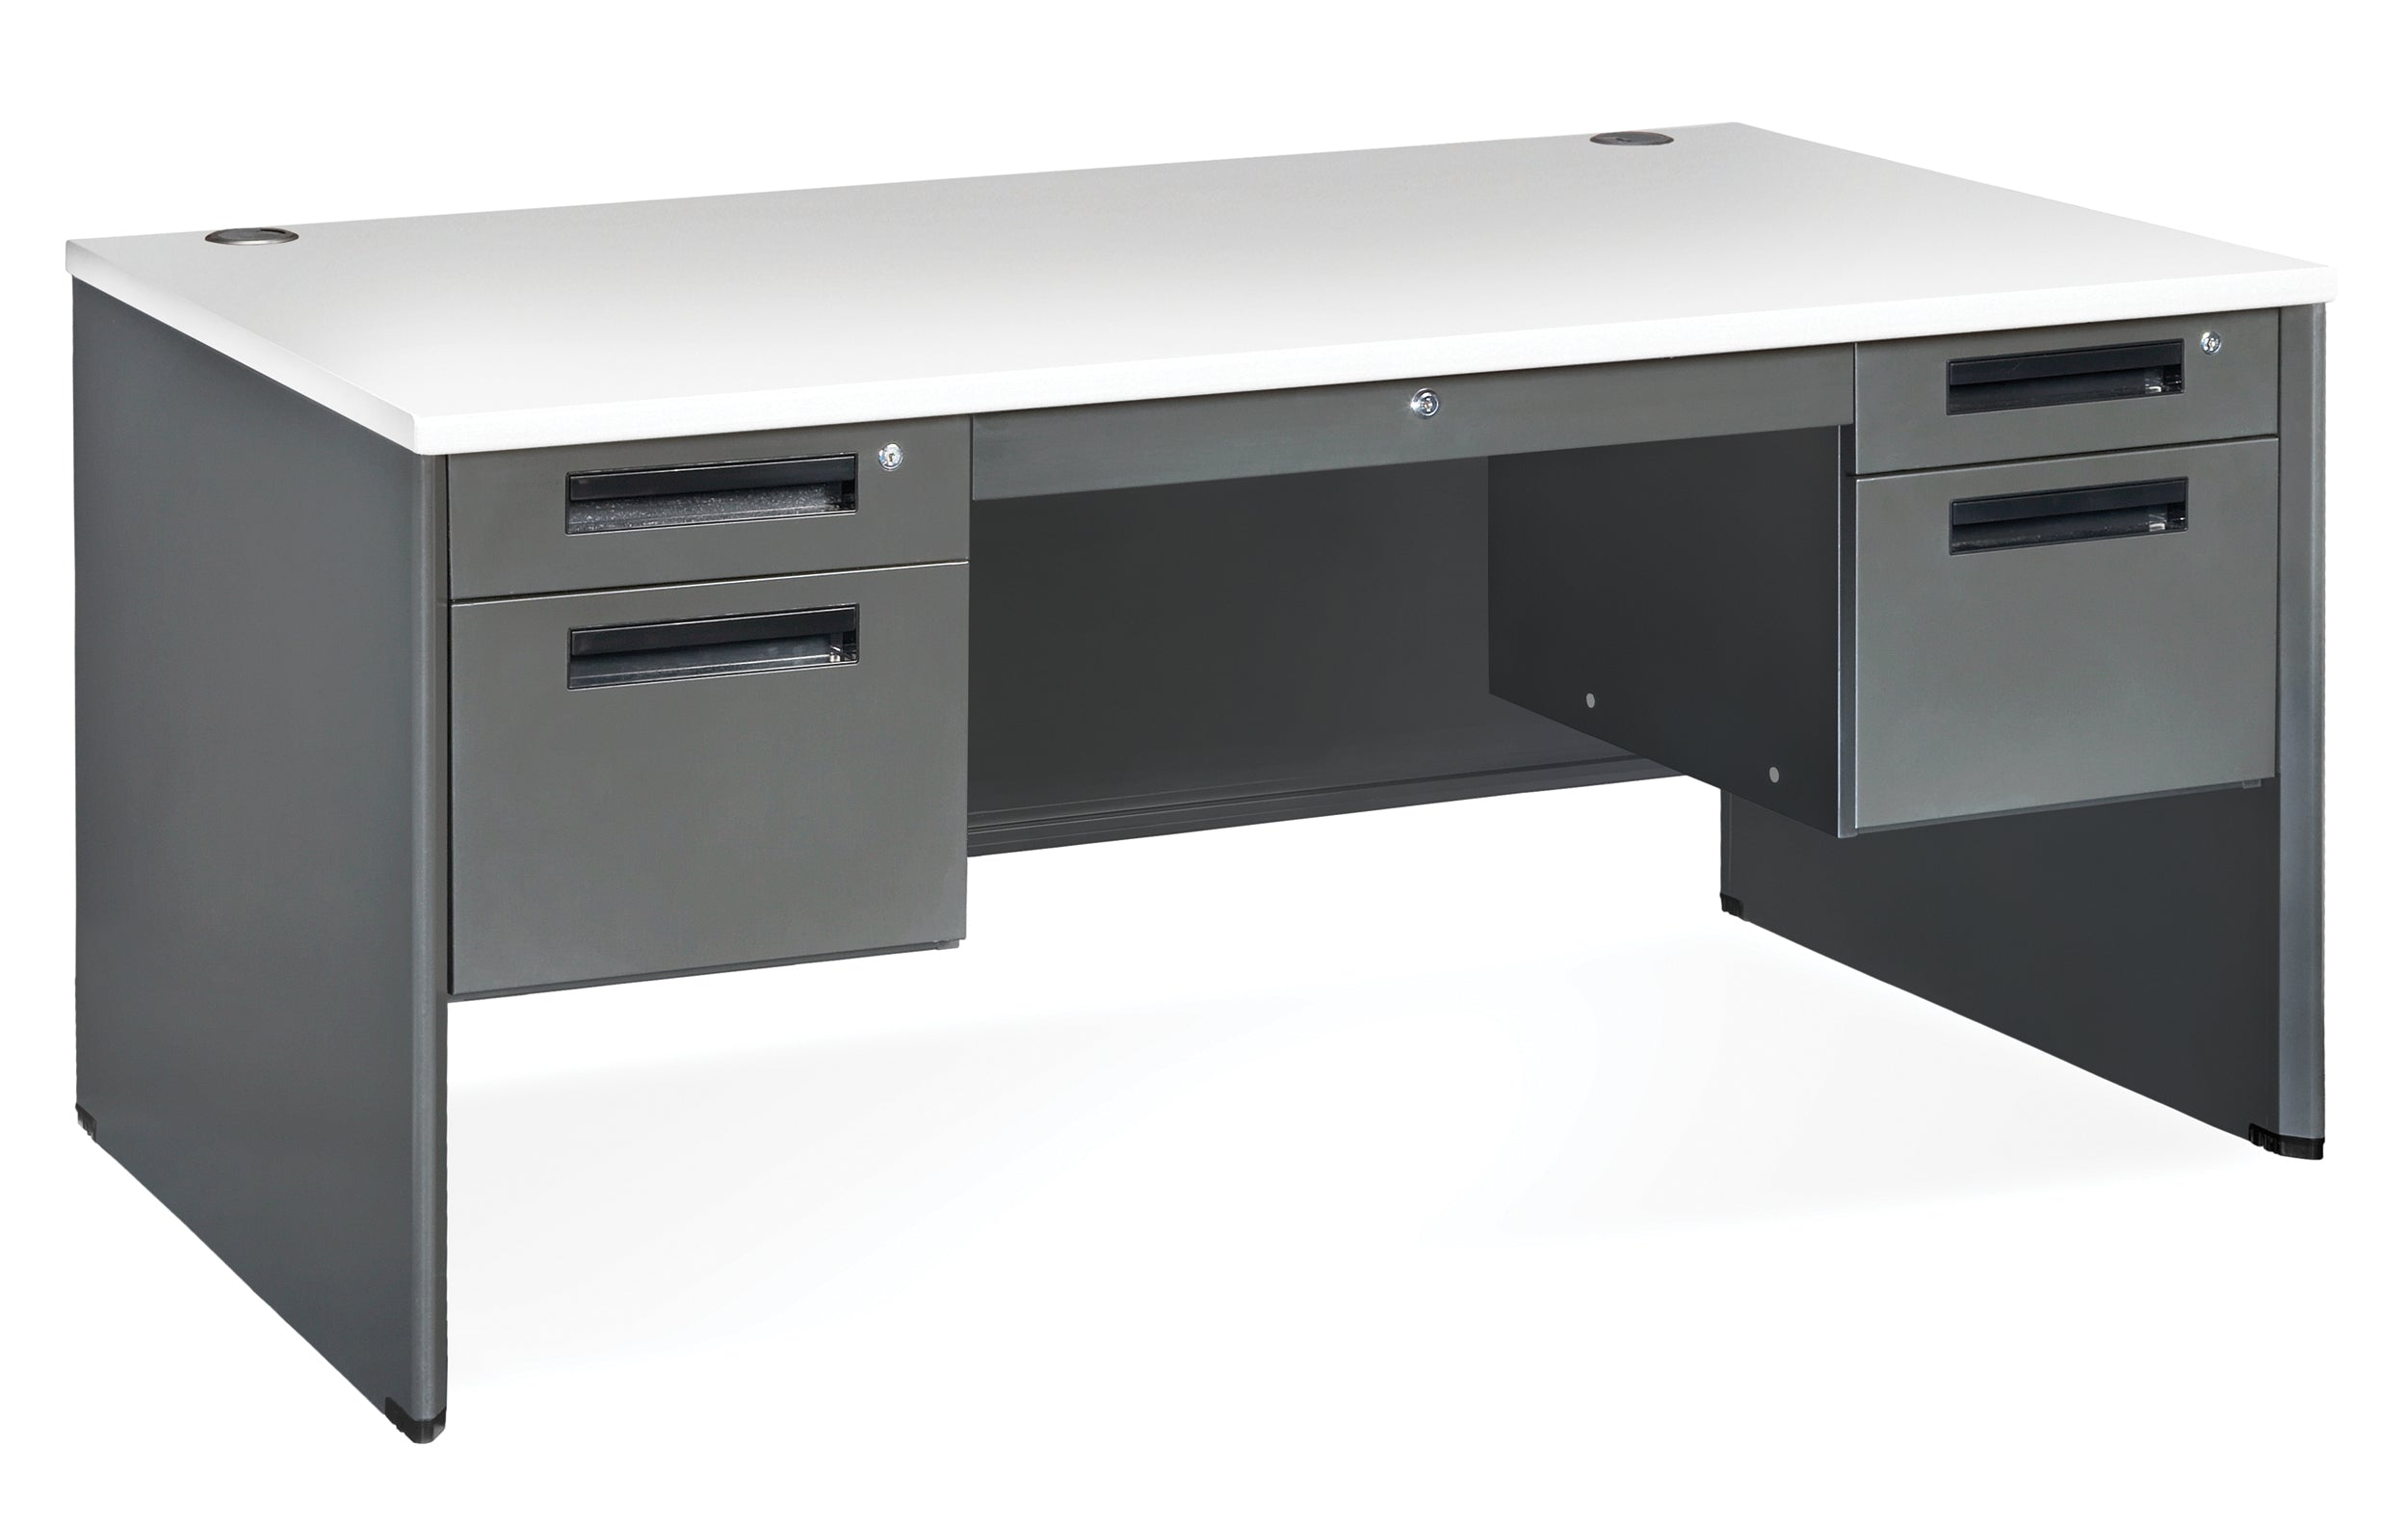 "Model 77360 Executive Series 5-Drawer Double Pedestal Desk, 30"" x 60"""